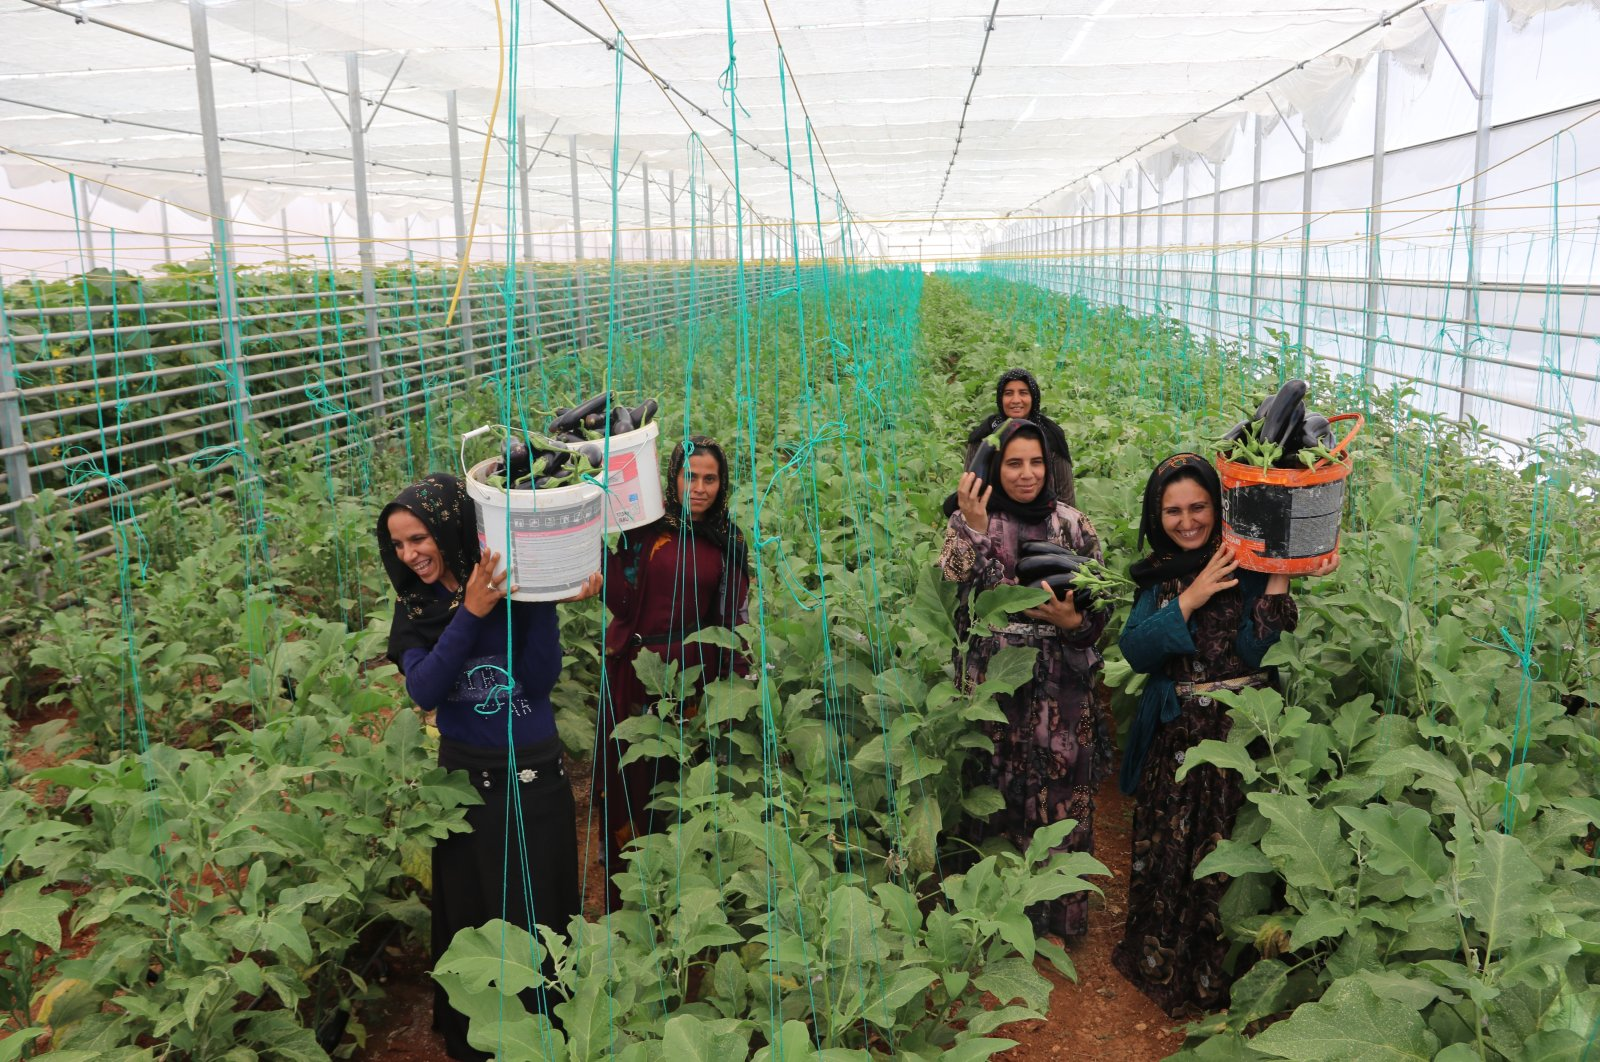 Women work at the greenhouse operated by the Cooperative, in Şanlıurfa, southeastern Turkey, June 23, 2021. (AA PHOTO)